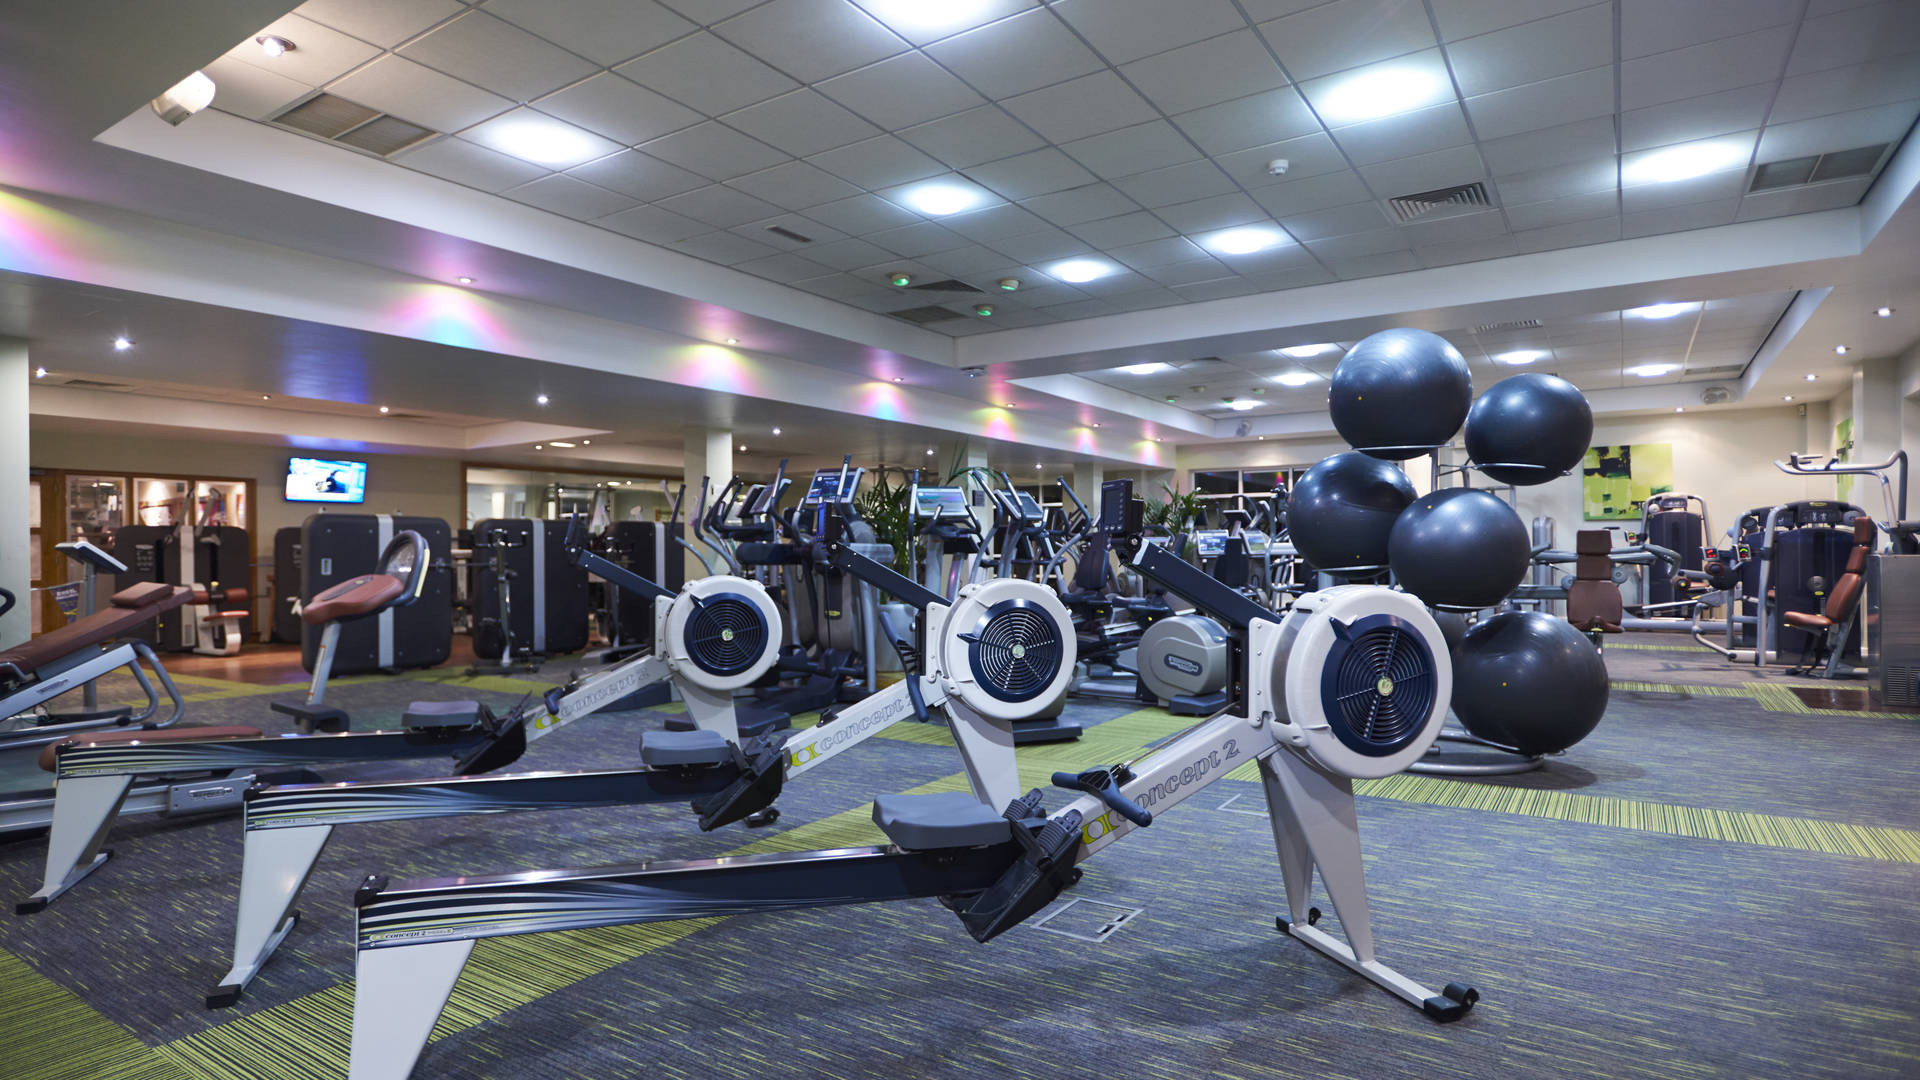 Health and Fitness at the Warwickshire Image